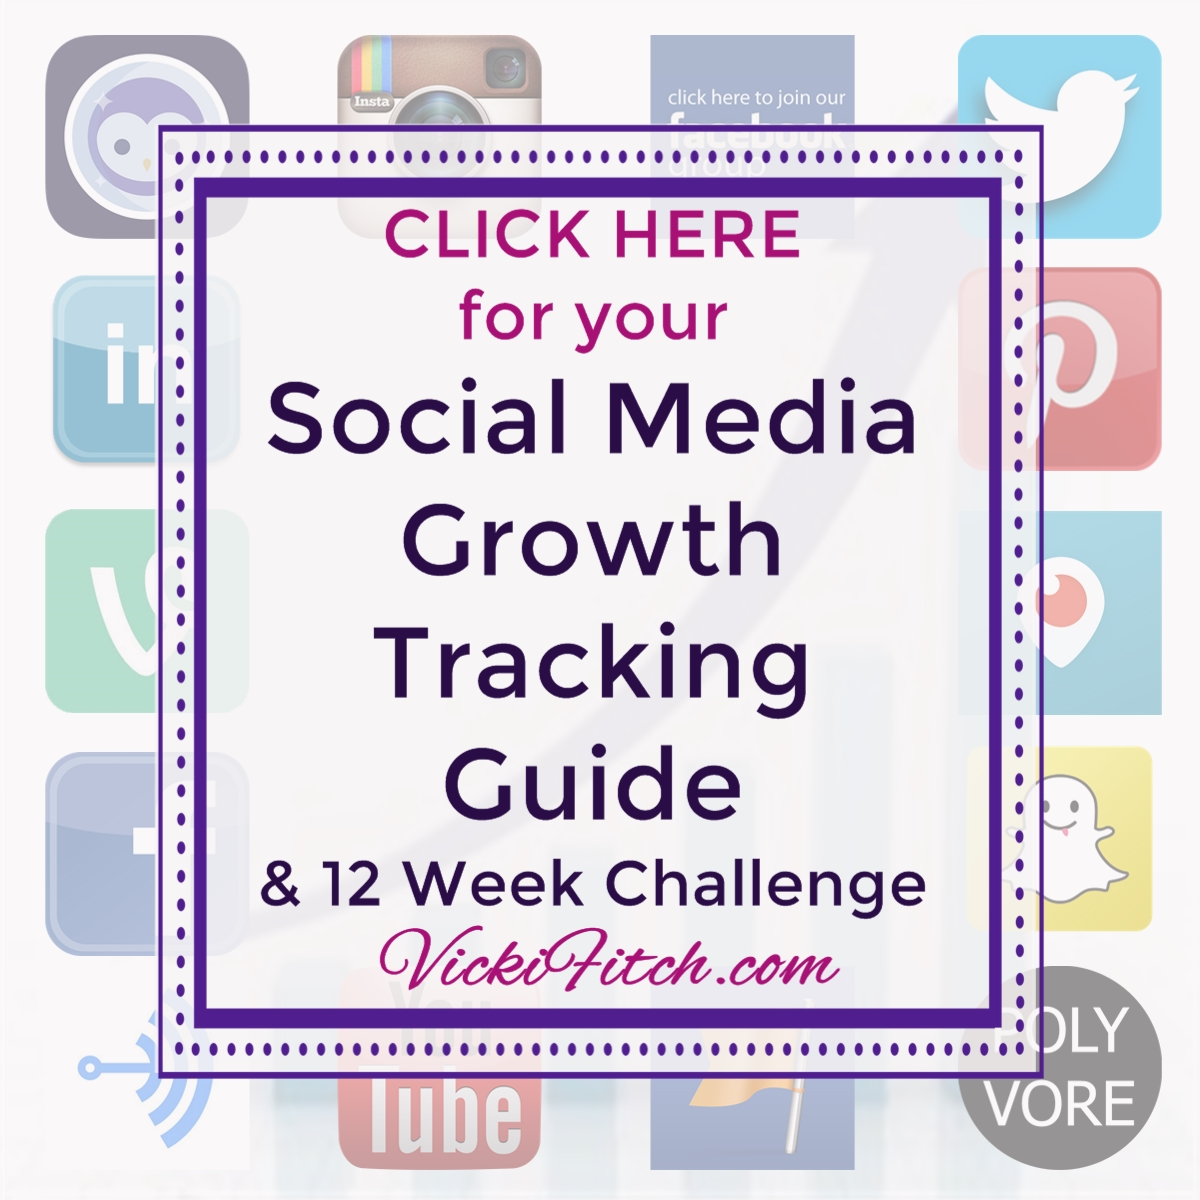 Social Media Growth Tracking Guide